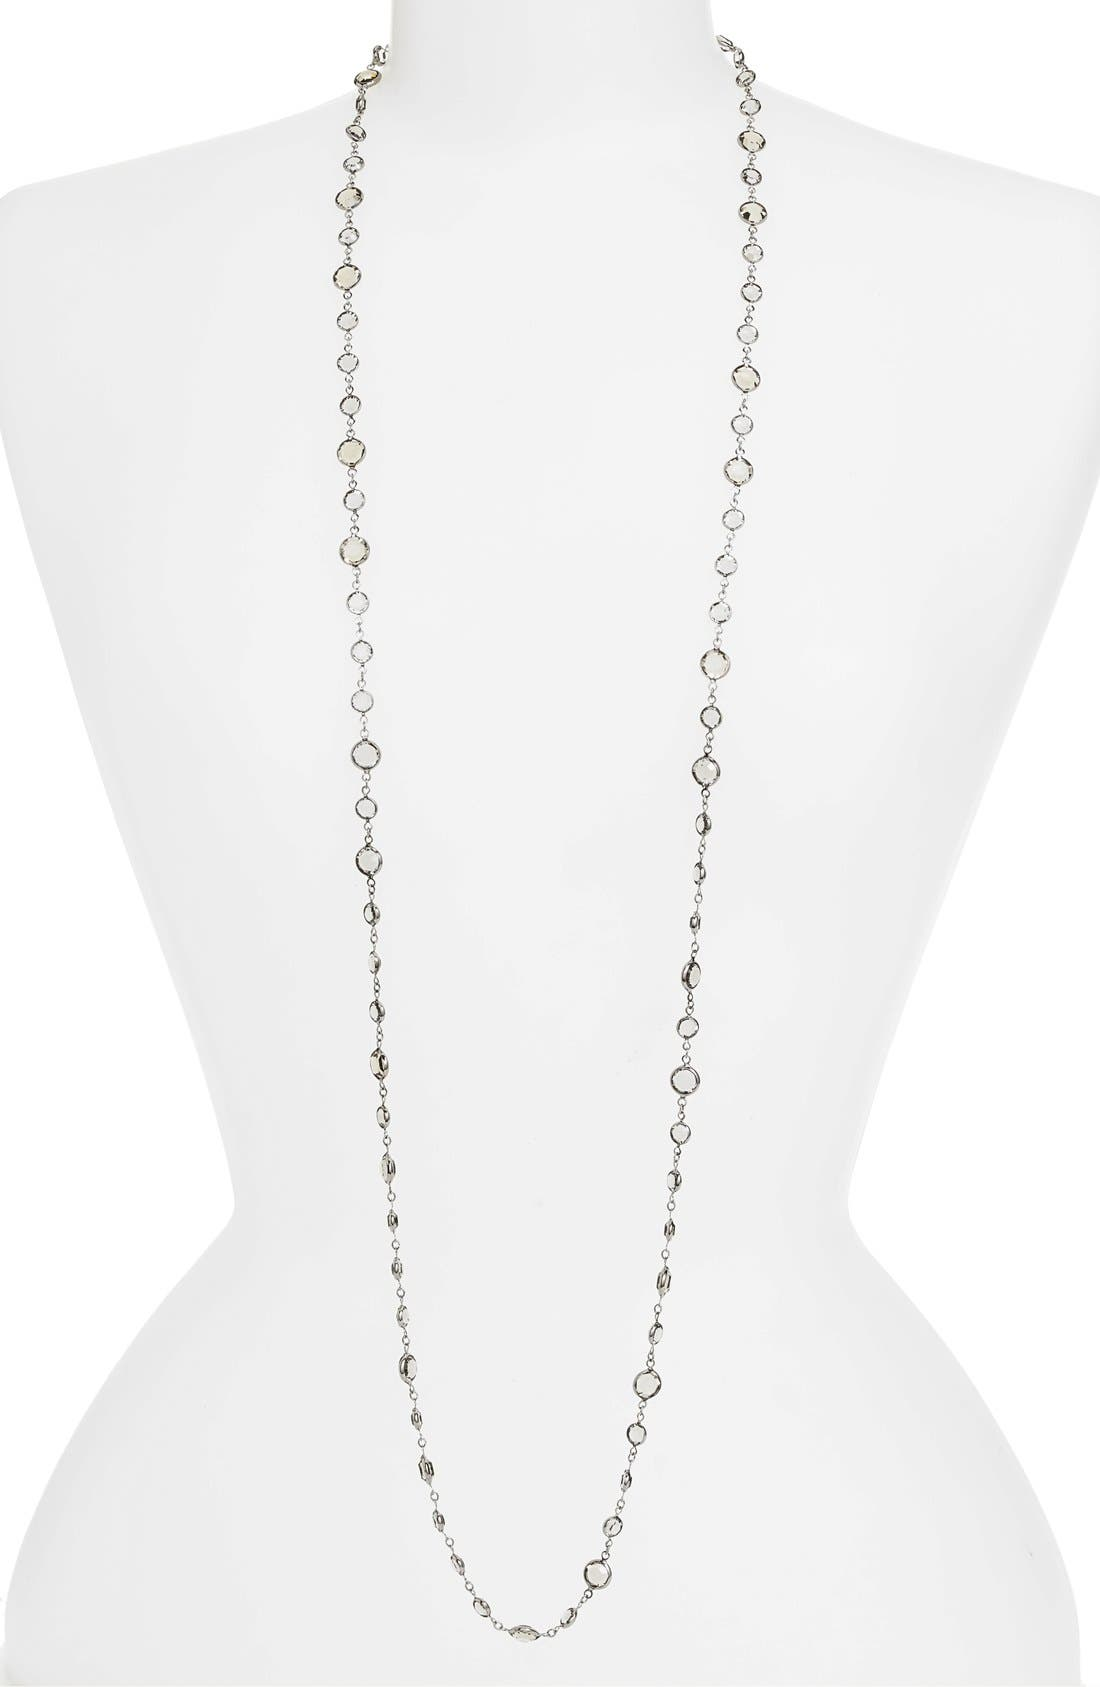 Main Image - Cristabelle Station Necklace